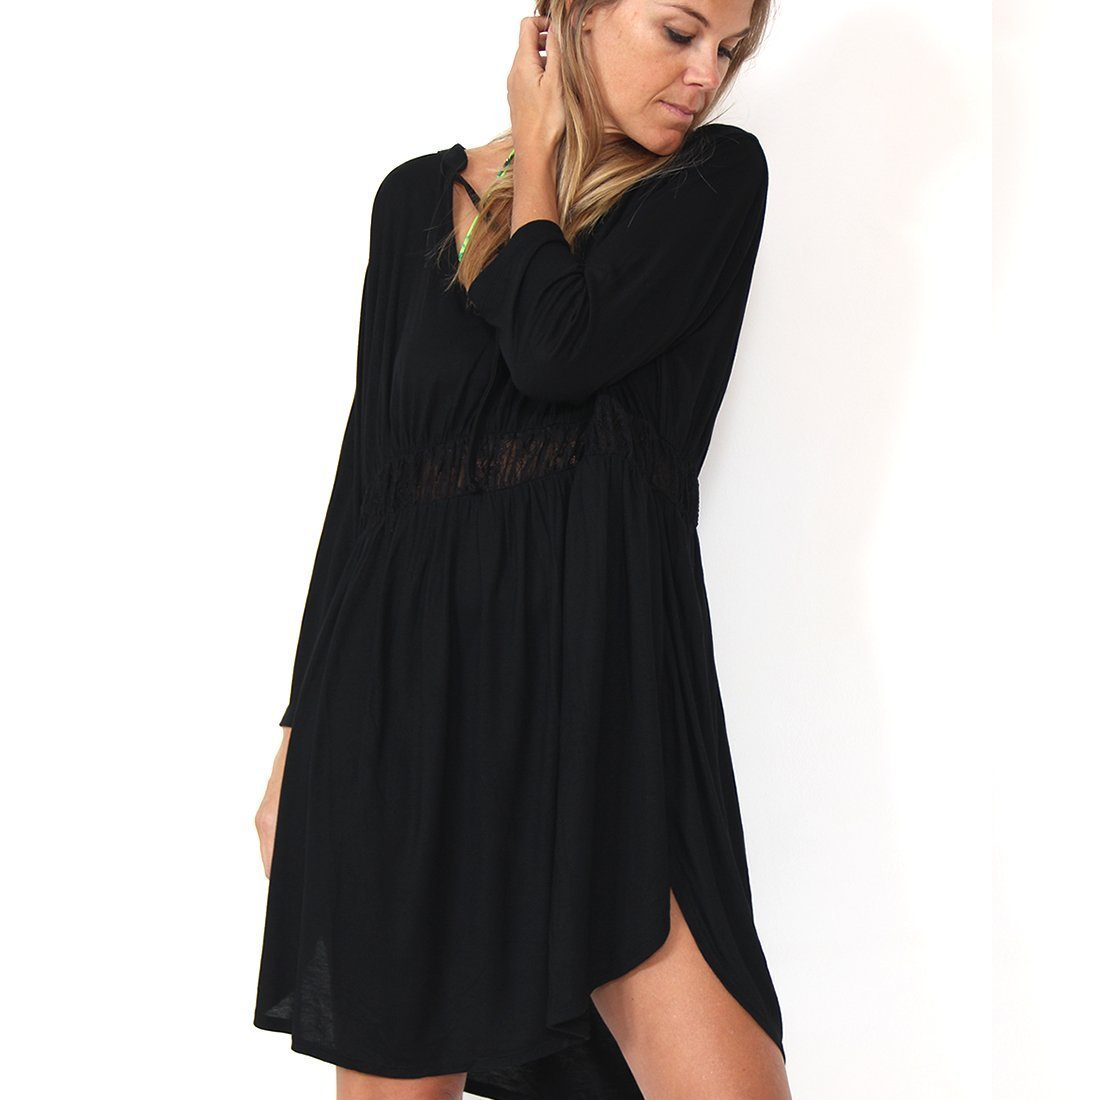 4a4bdf62 Murliyn Women's flowy Little Black T-Shirt Dress, Tie Neck Blouse, Tunic Top